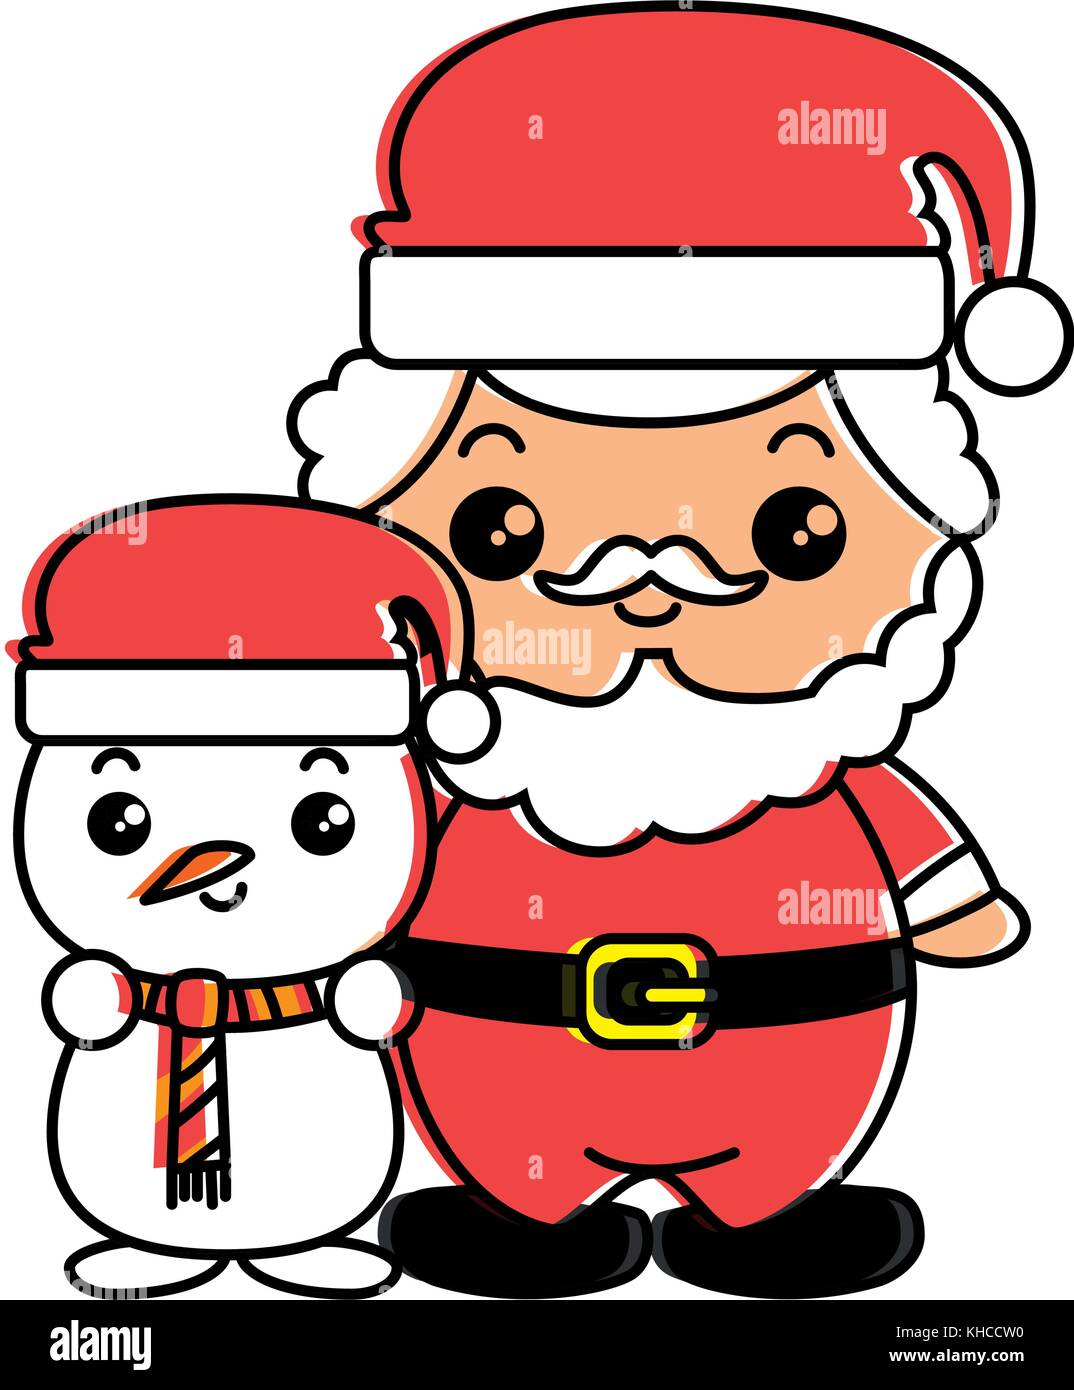 Cute Santa Claus With Snowman Kawaii Characters Vector Illustration Stock Vector Image Art Alamy